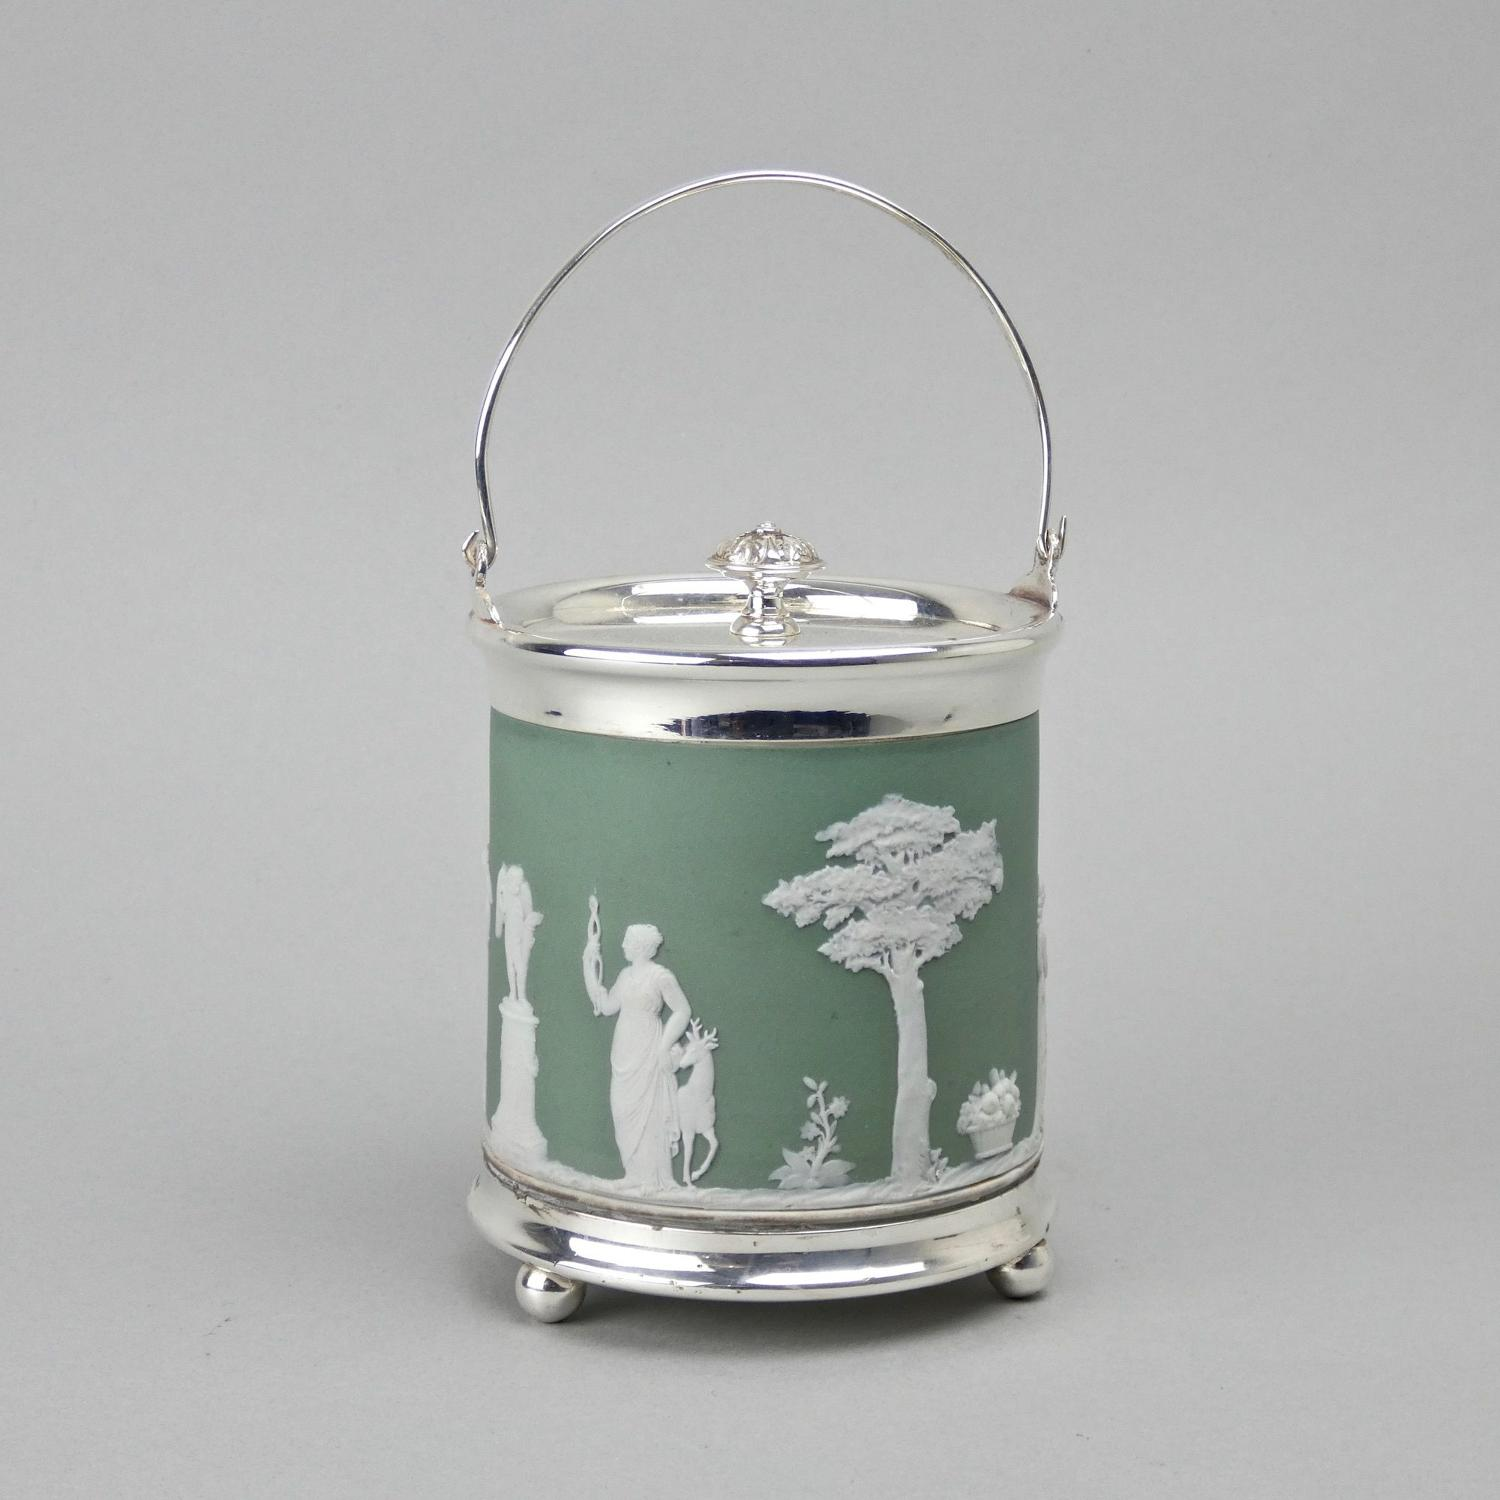 Small, green jasper biscuit barrel